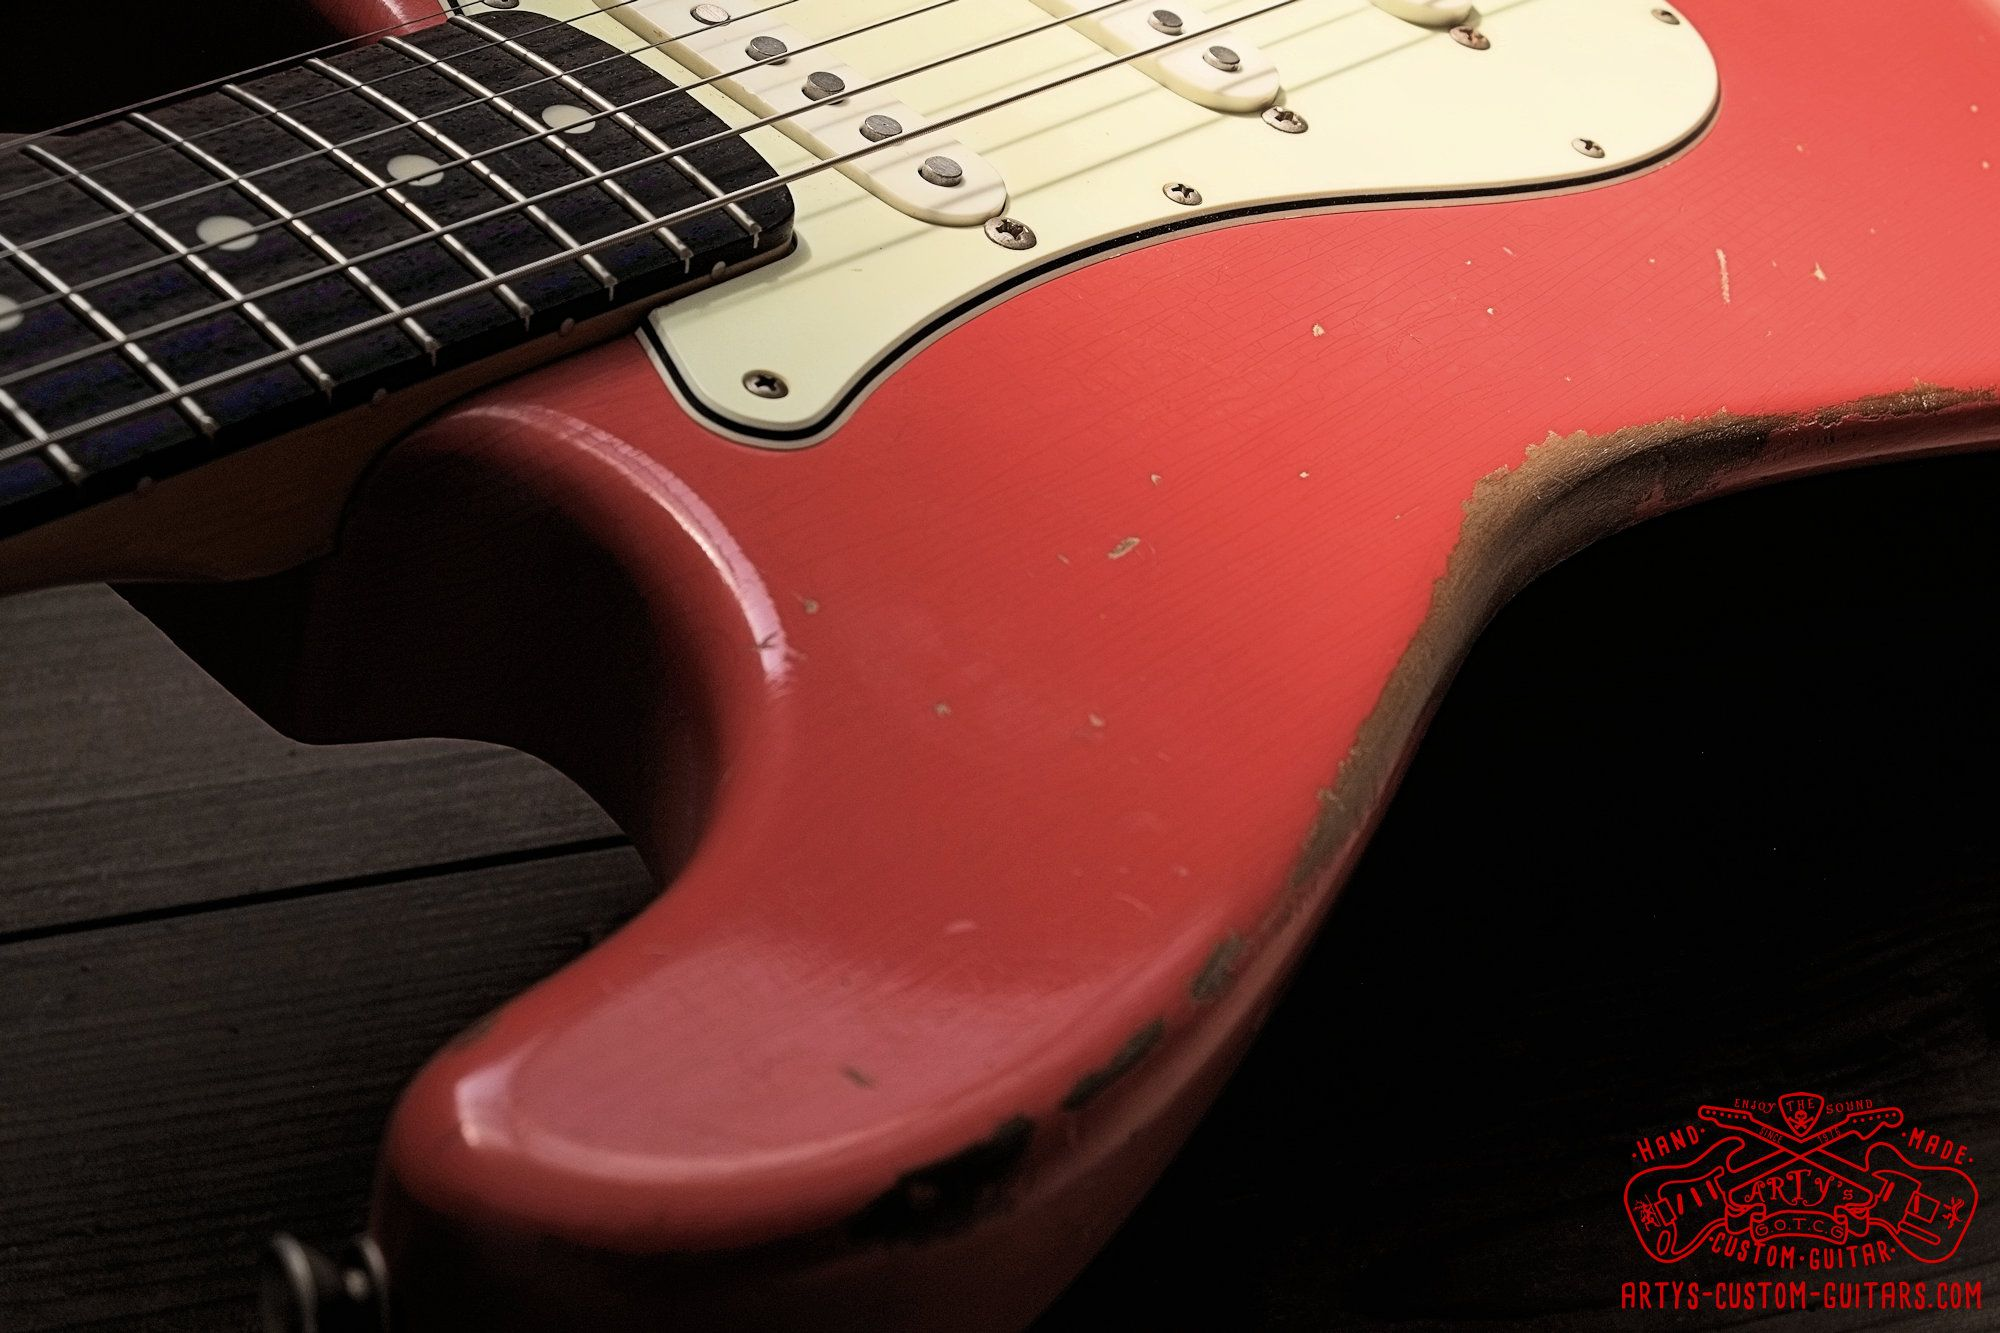 hight resolution of stratocaster 62 heavy relic fiesta red body artys custom guitars shop strat relicing swamp ash swampash